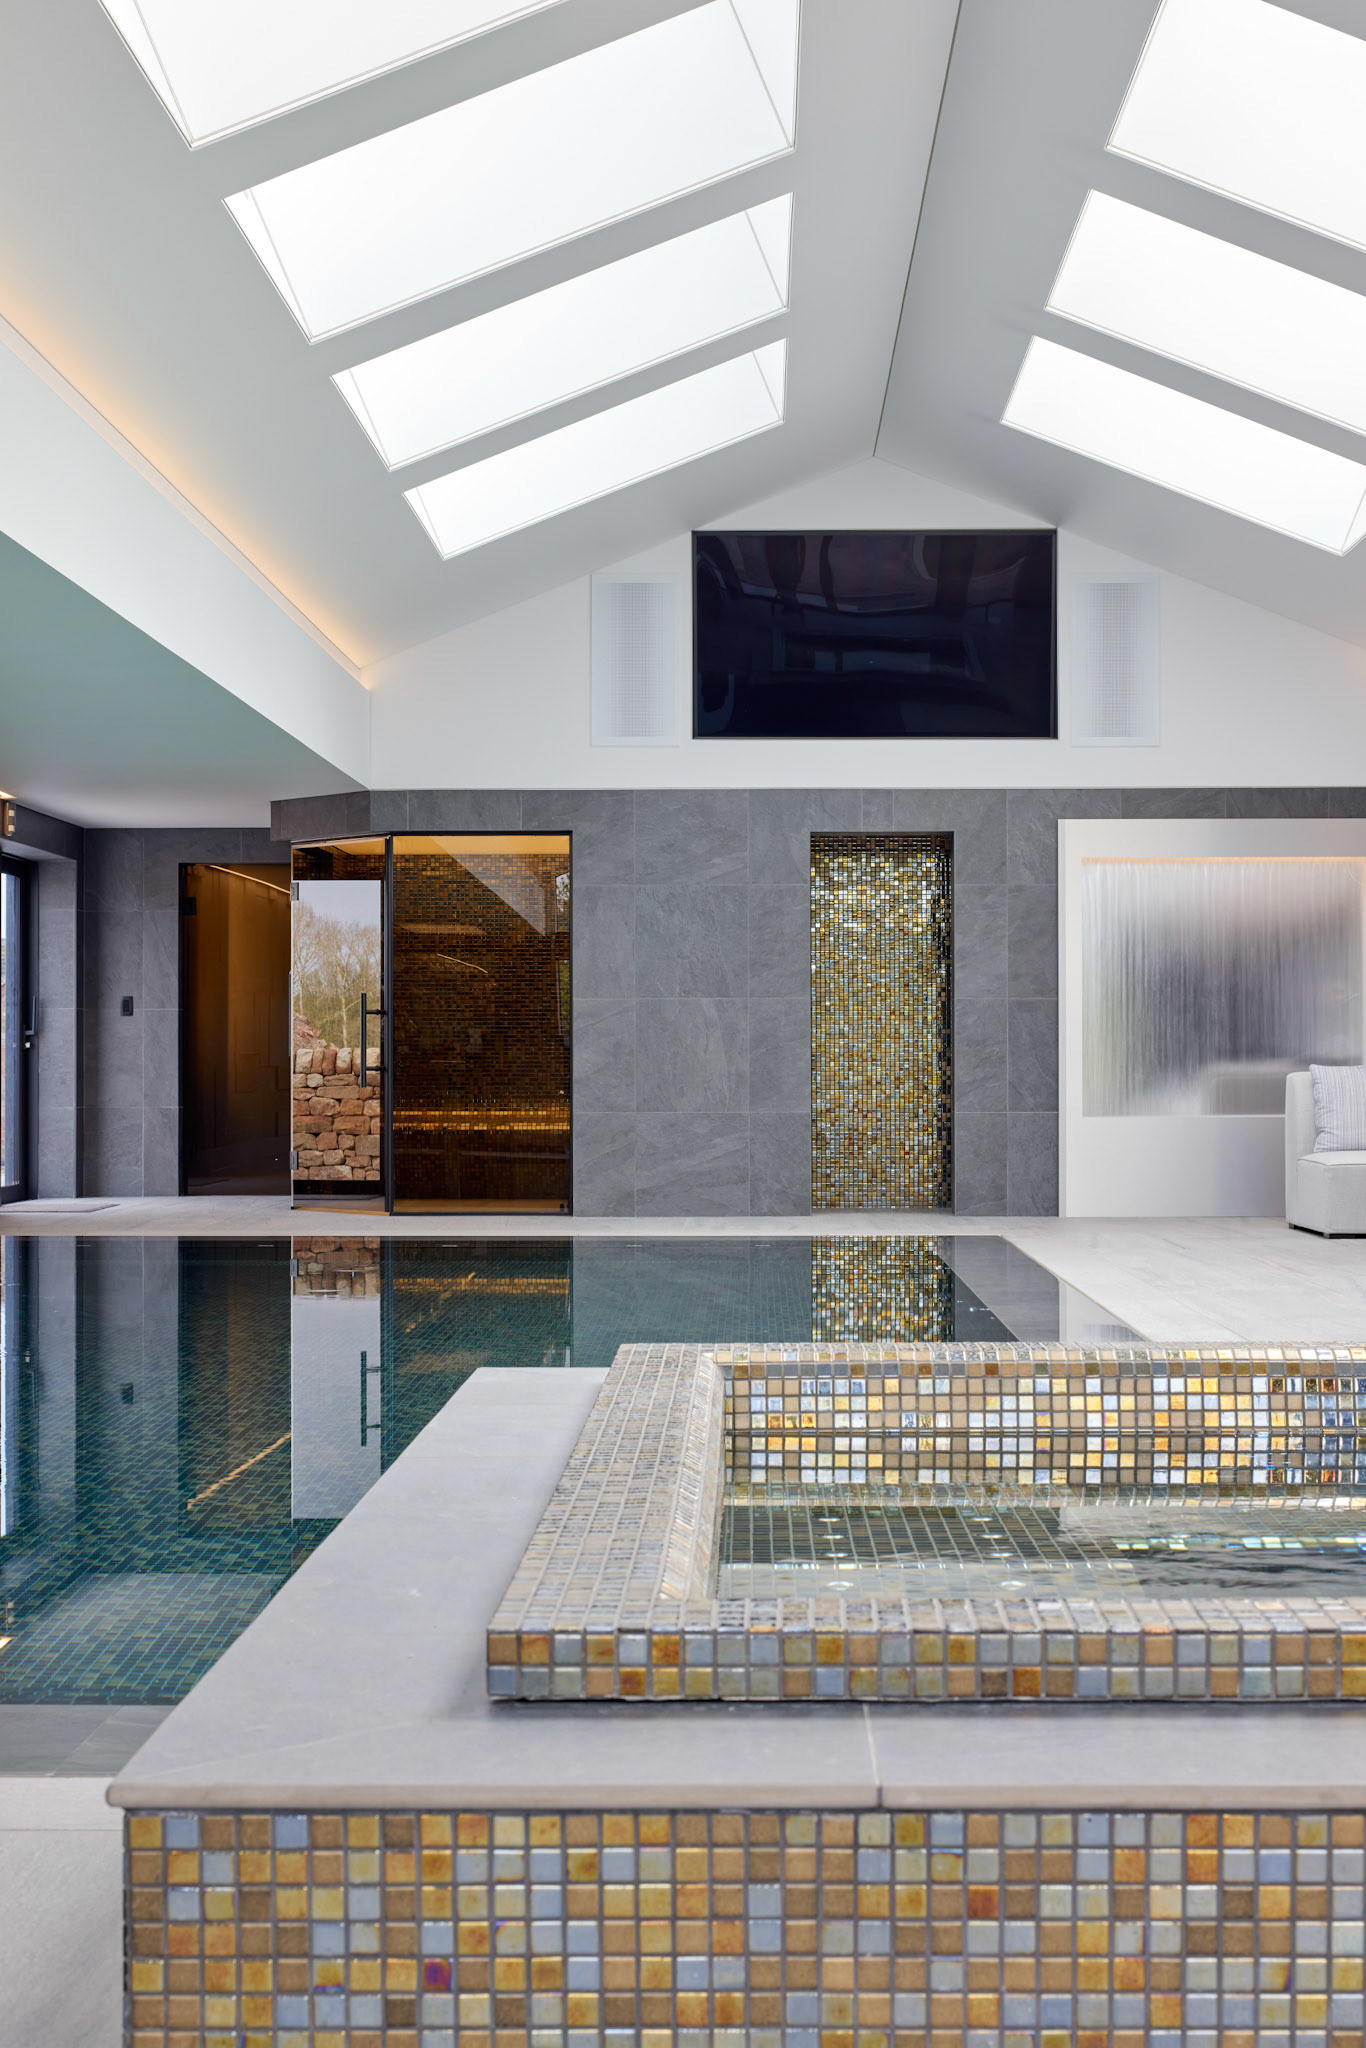 Architectural Photography Pool and Sp interior white with grey wall and gold tiles in purpose built home pool detail of gold tiles and pool in background